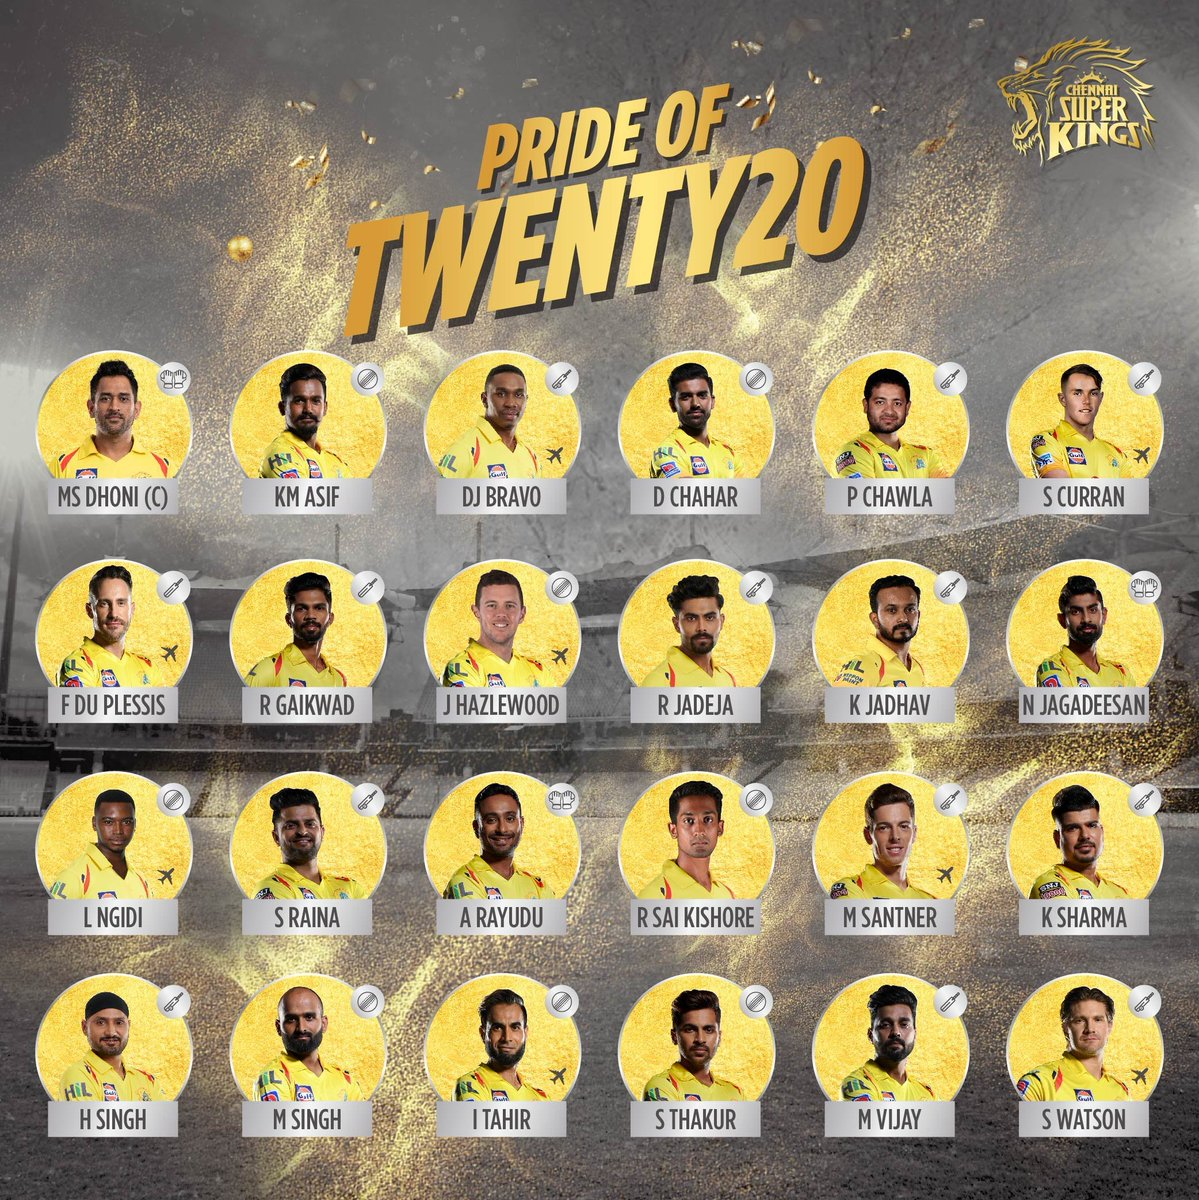 Kings are backNow we are truly 24/7 #yellove! #PrideOfT20 #WhistlePodu #SuperFam 🦁💛